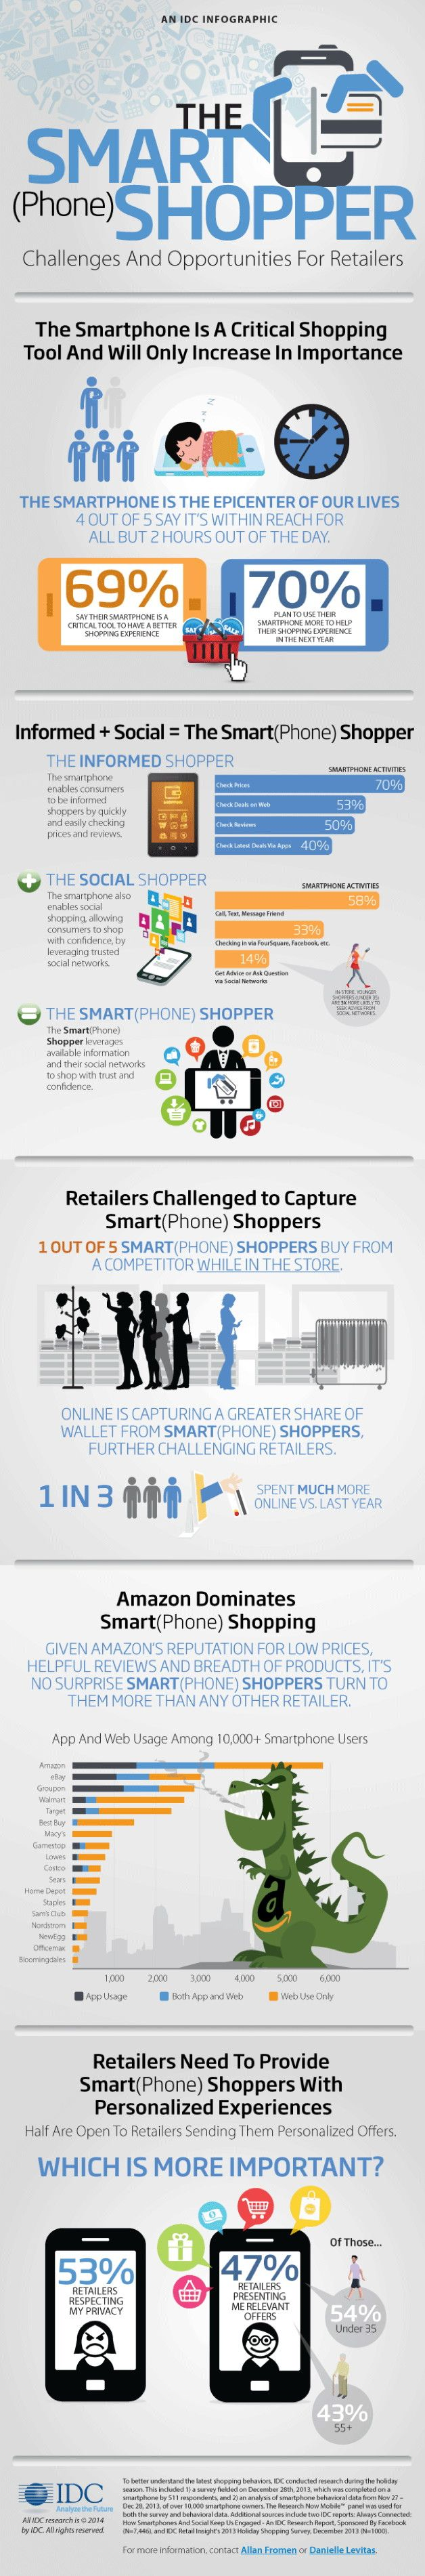 Infographic: 70 per cent plan to shop more on mobile http://www.cherrysource.net/infographic-70-per-cent-plan-to-shop-more-on-mobile?goback=%2Egde_61398_member_5832390706123022336#%21